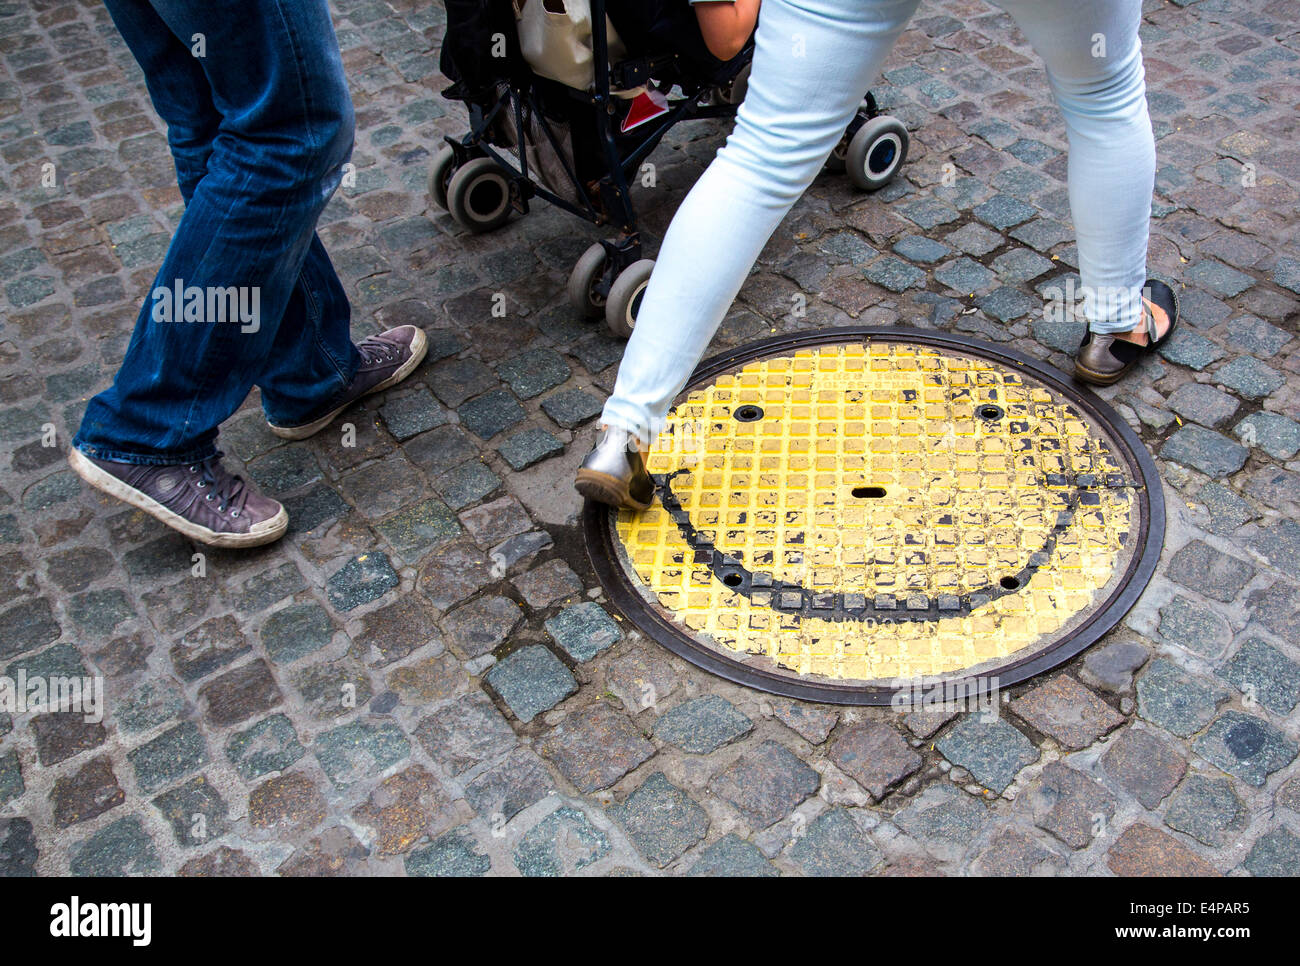 Manhole cover with a smily face painted, - Stock Image